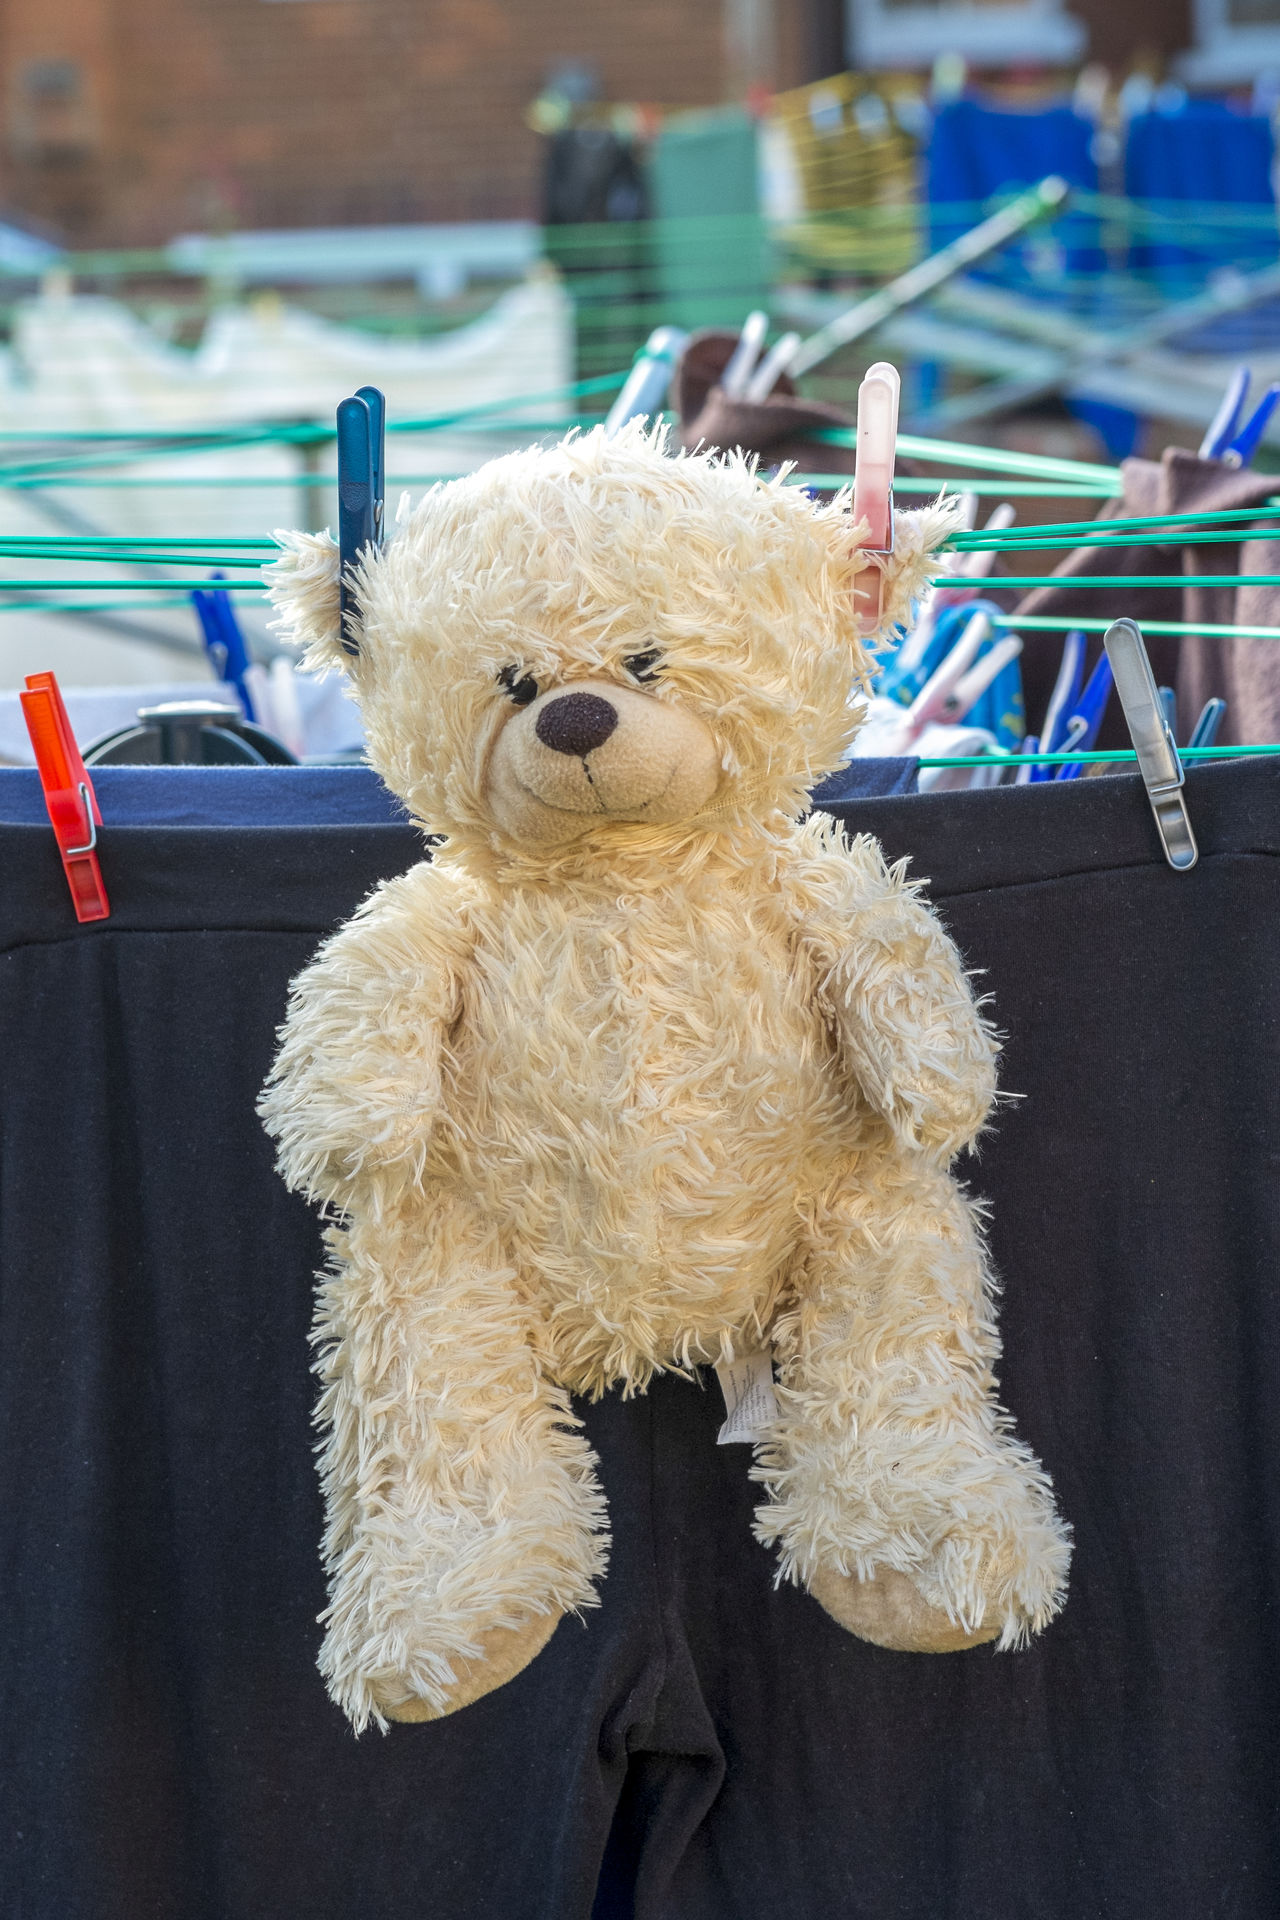 Childs teddy bear drying on washing line Animal Representation Animal Themes Bear Childhood Childs Toy Clean Close-up Clothes Pegs Comfort Cuddly Toy Cuddly Toys Cute Drying Drying Clothes Fluffy Friend Happy Expression Keep Smiling Smiling Stuffed Toy Teddy Teddy Bear Toy Washed Washing Line